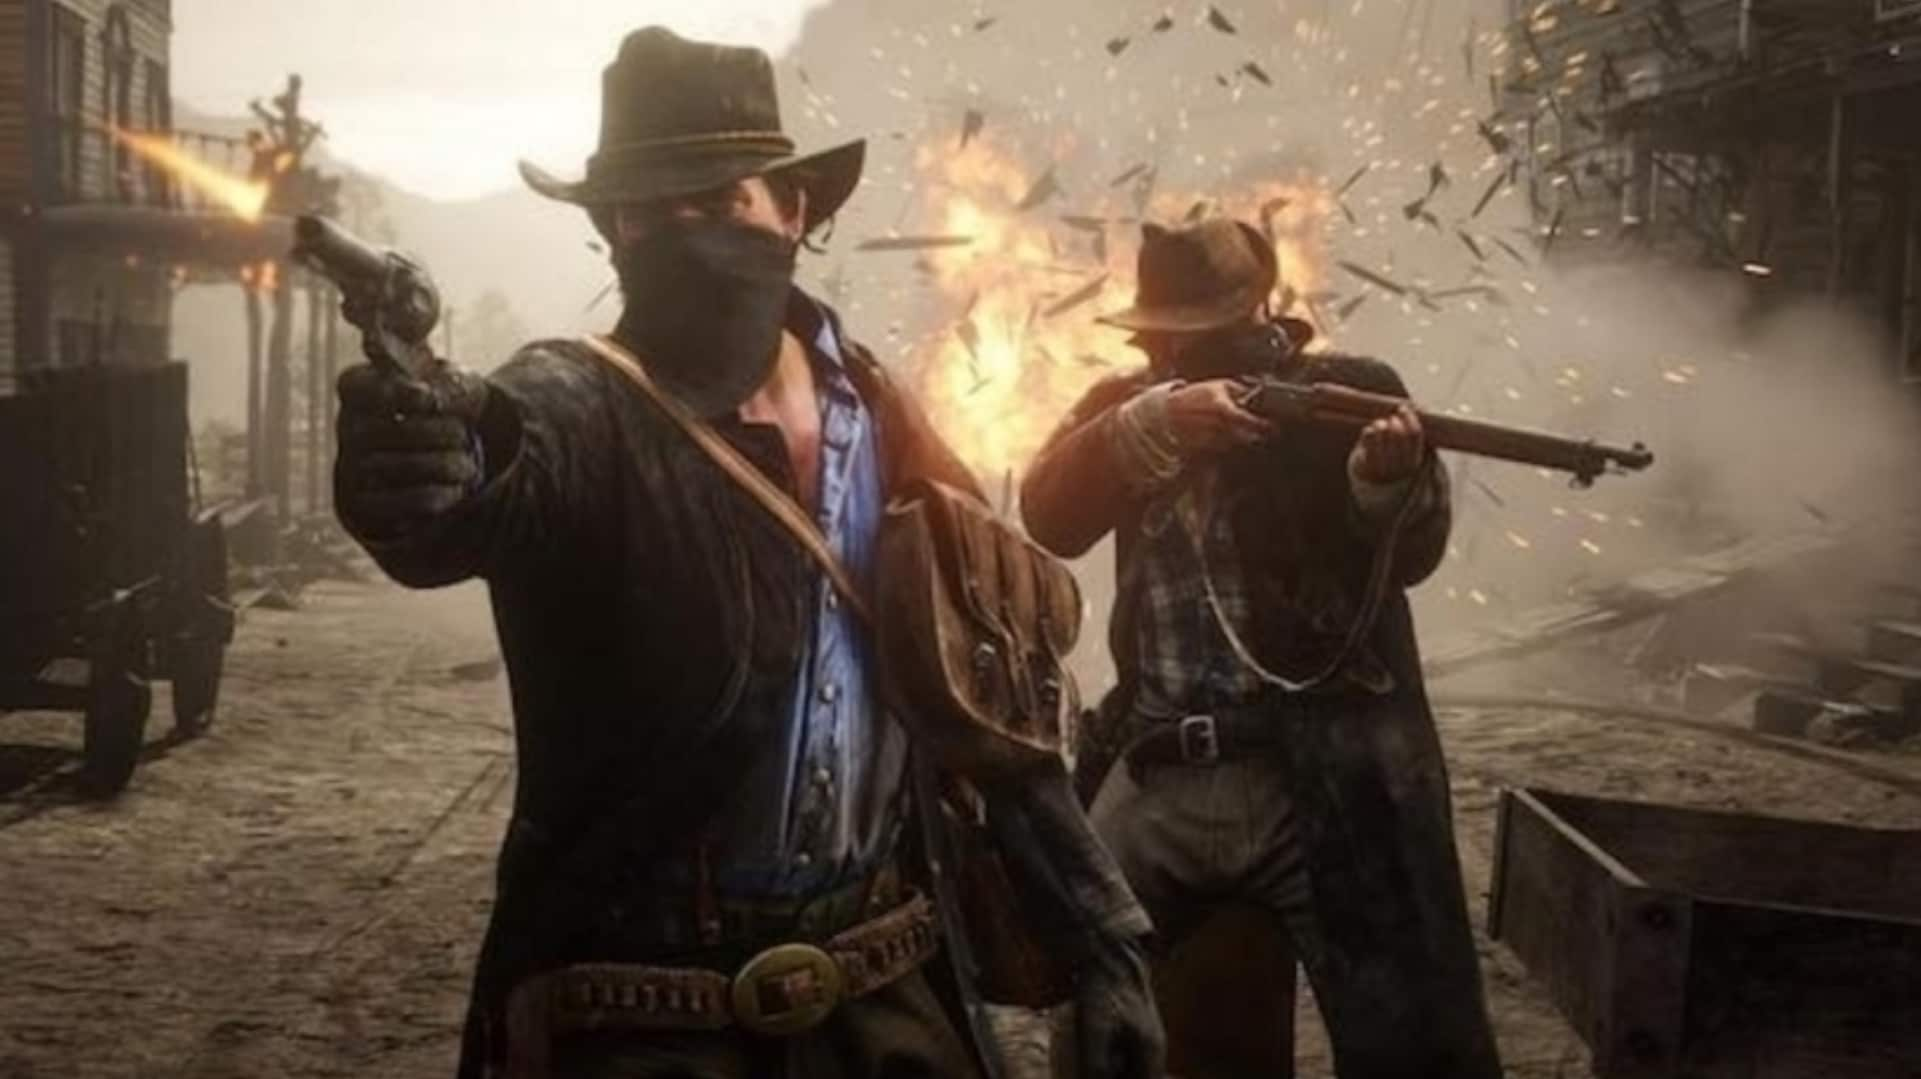 Red Dead Redemption 2: The symbology, morality and philosophy of